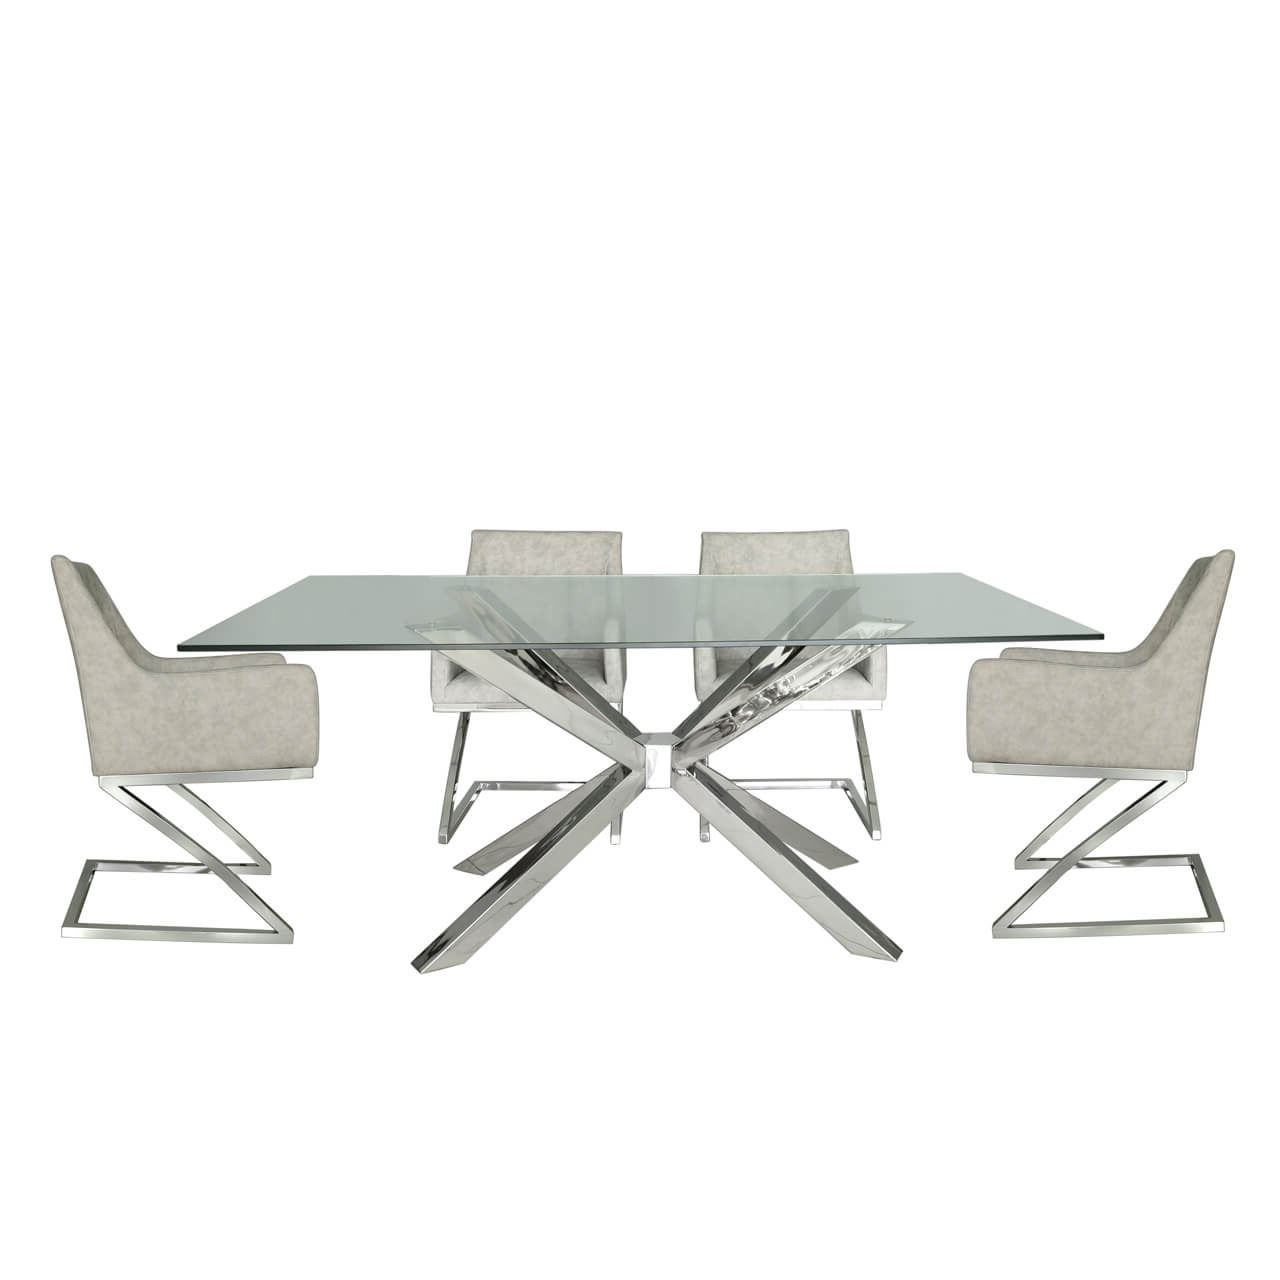 Details About Tempered Glass Steel Chrome Chrome And Glass Dining Table & 4 Light Grey Chairs Intended For Trendy Chrome Dining Tables With Tempered Glass (View 23 of 30)